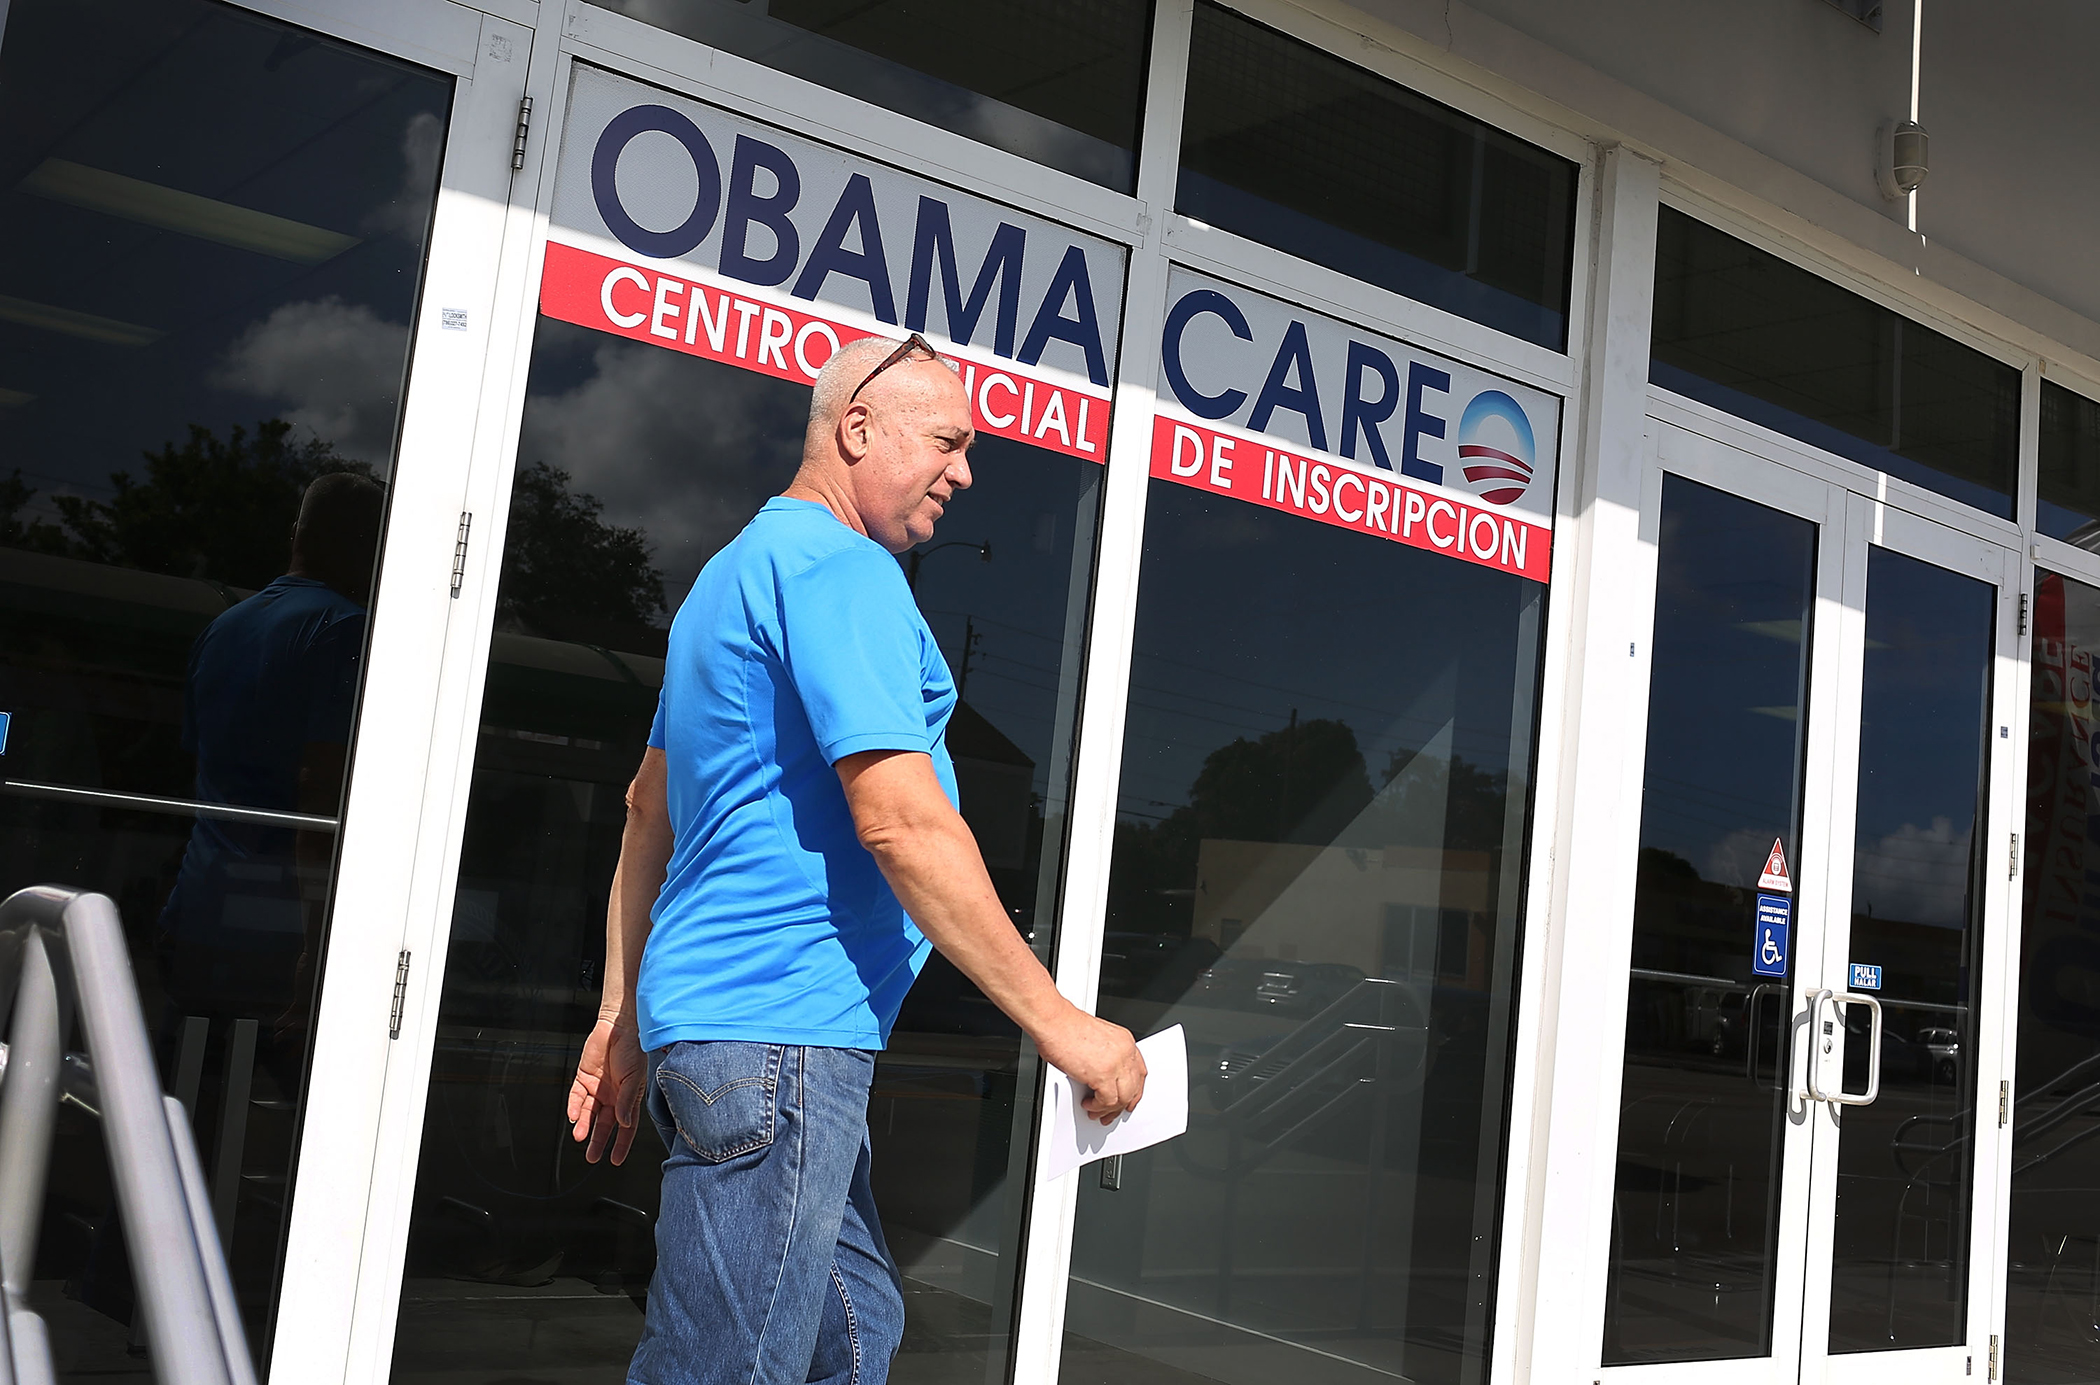 Alberto Abin walks out of the UniVista Insurance company office after shopping for a health plan under the Affordable Care Act, also known as Obamacare, on December 15, 2015 in Miami, Florida.